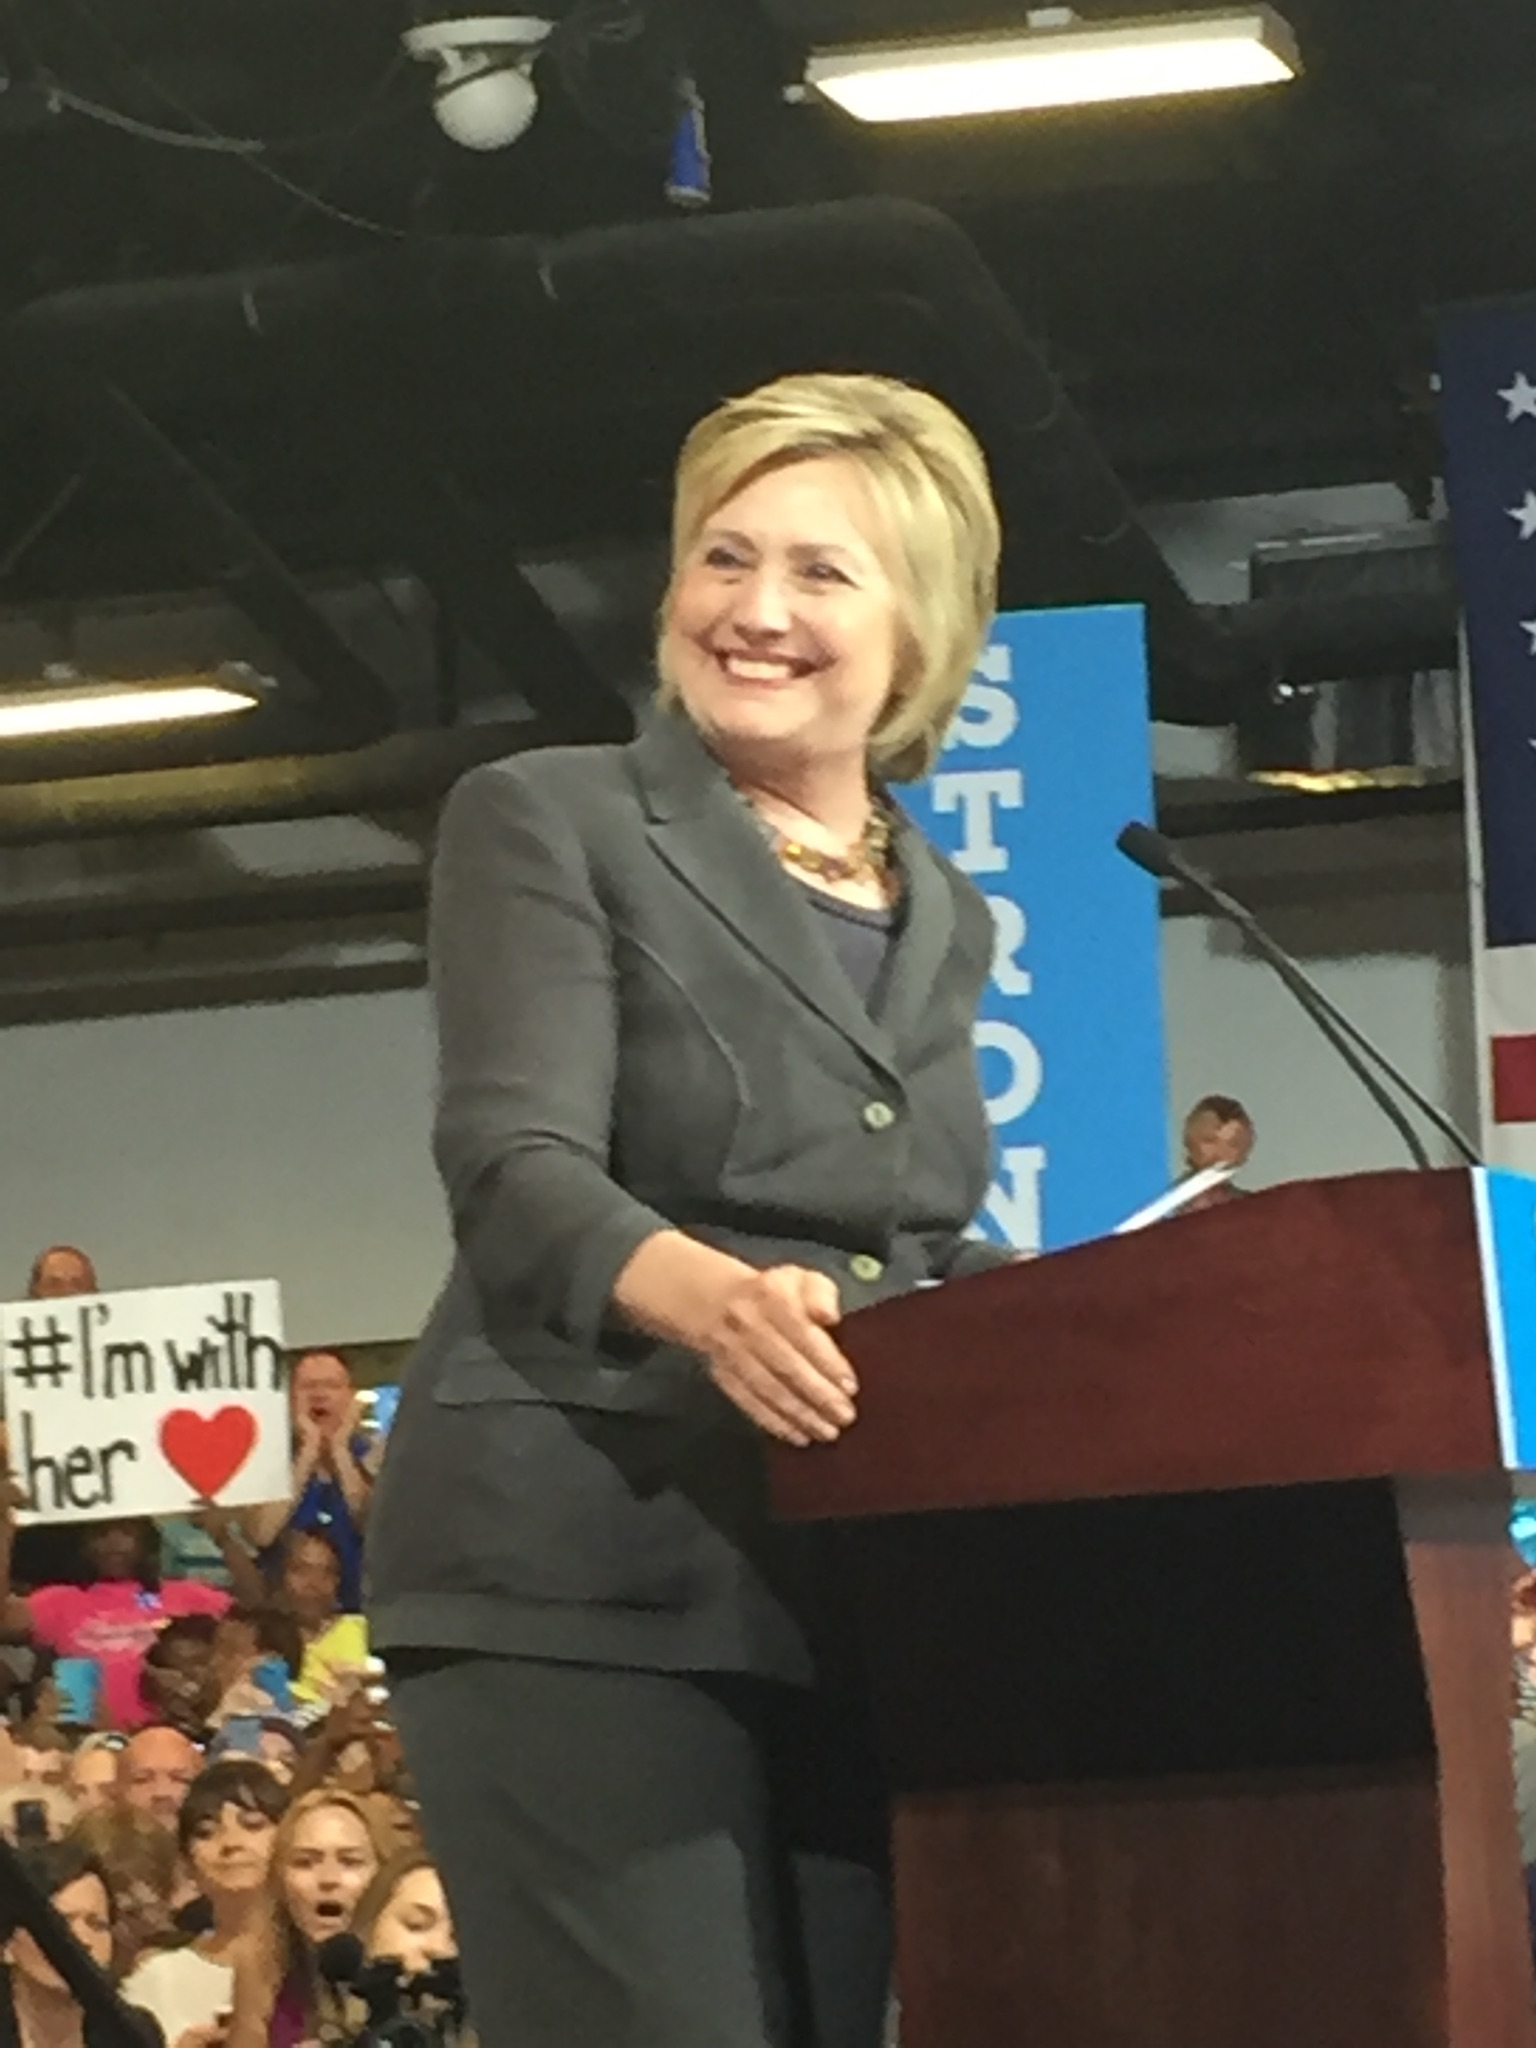 Secretary Clinton in Raleigh